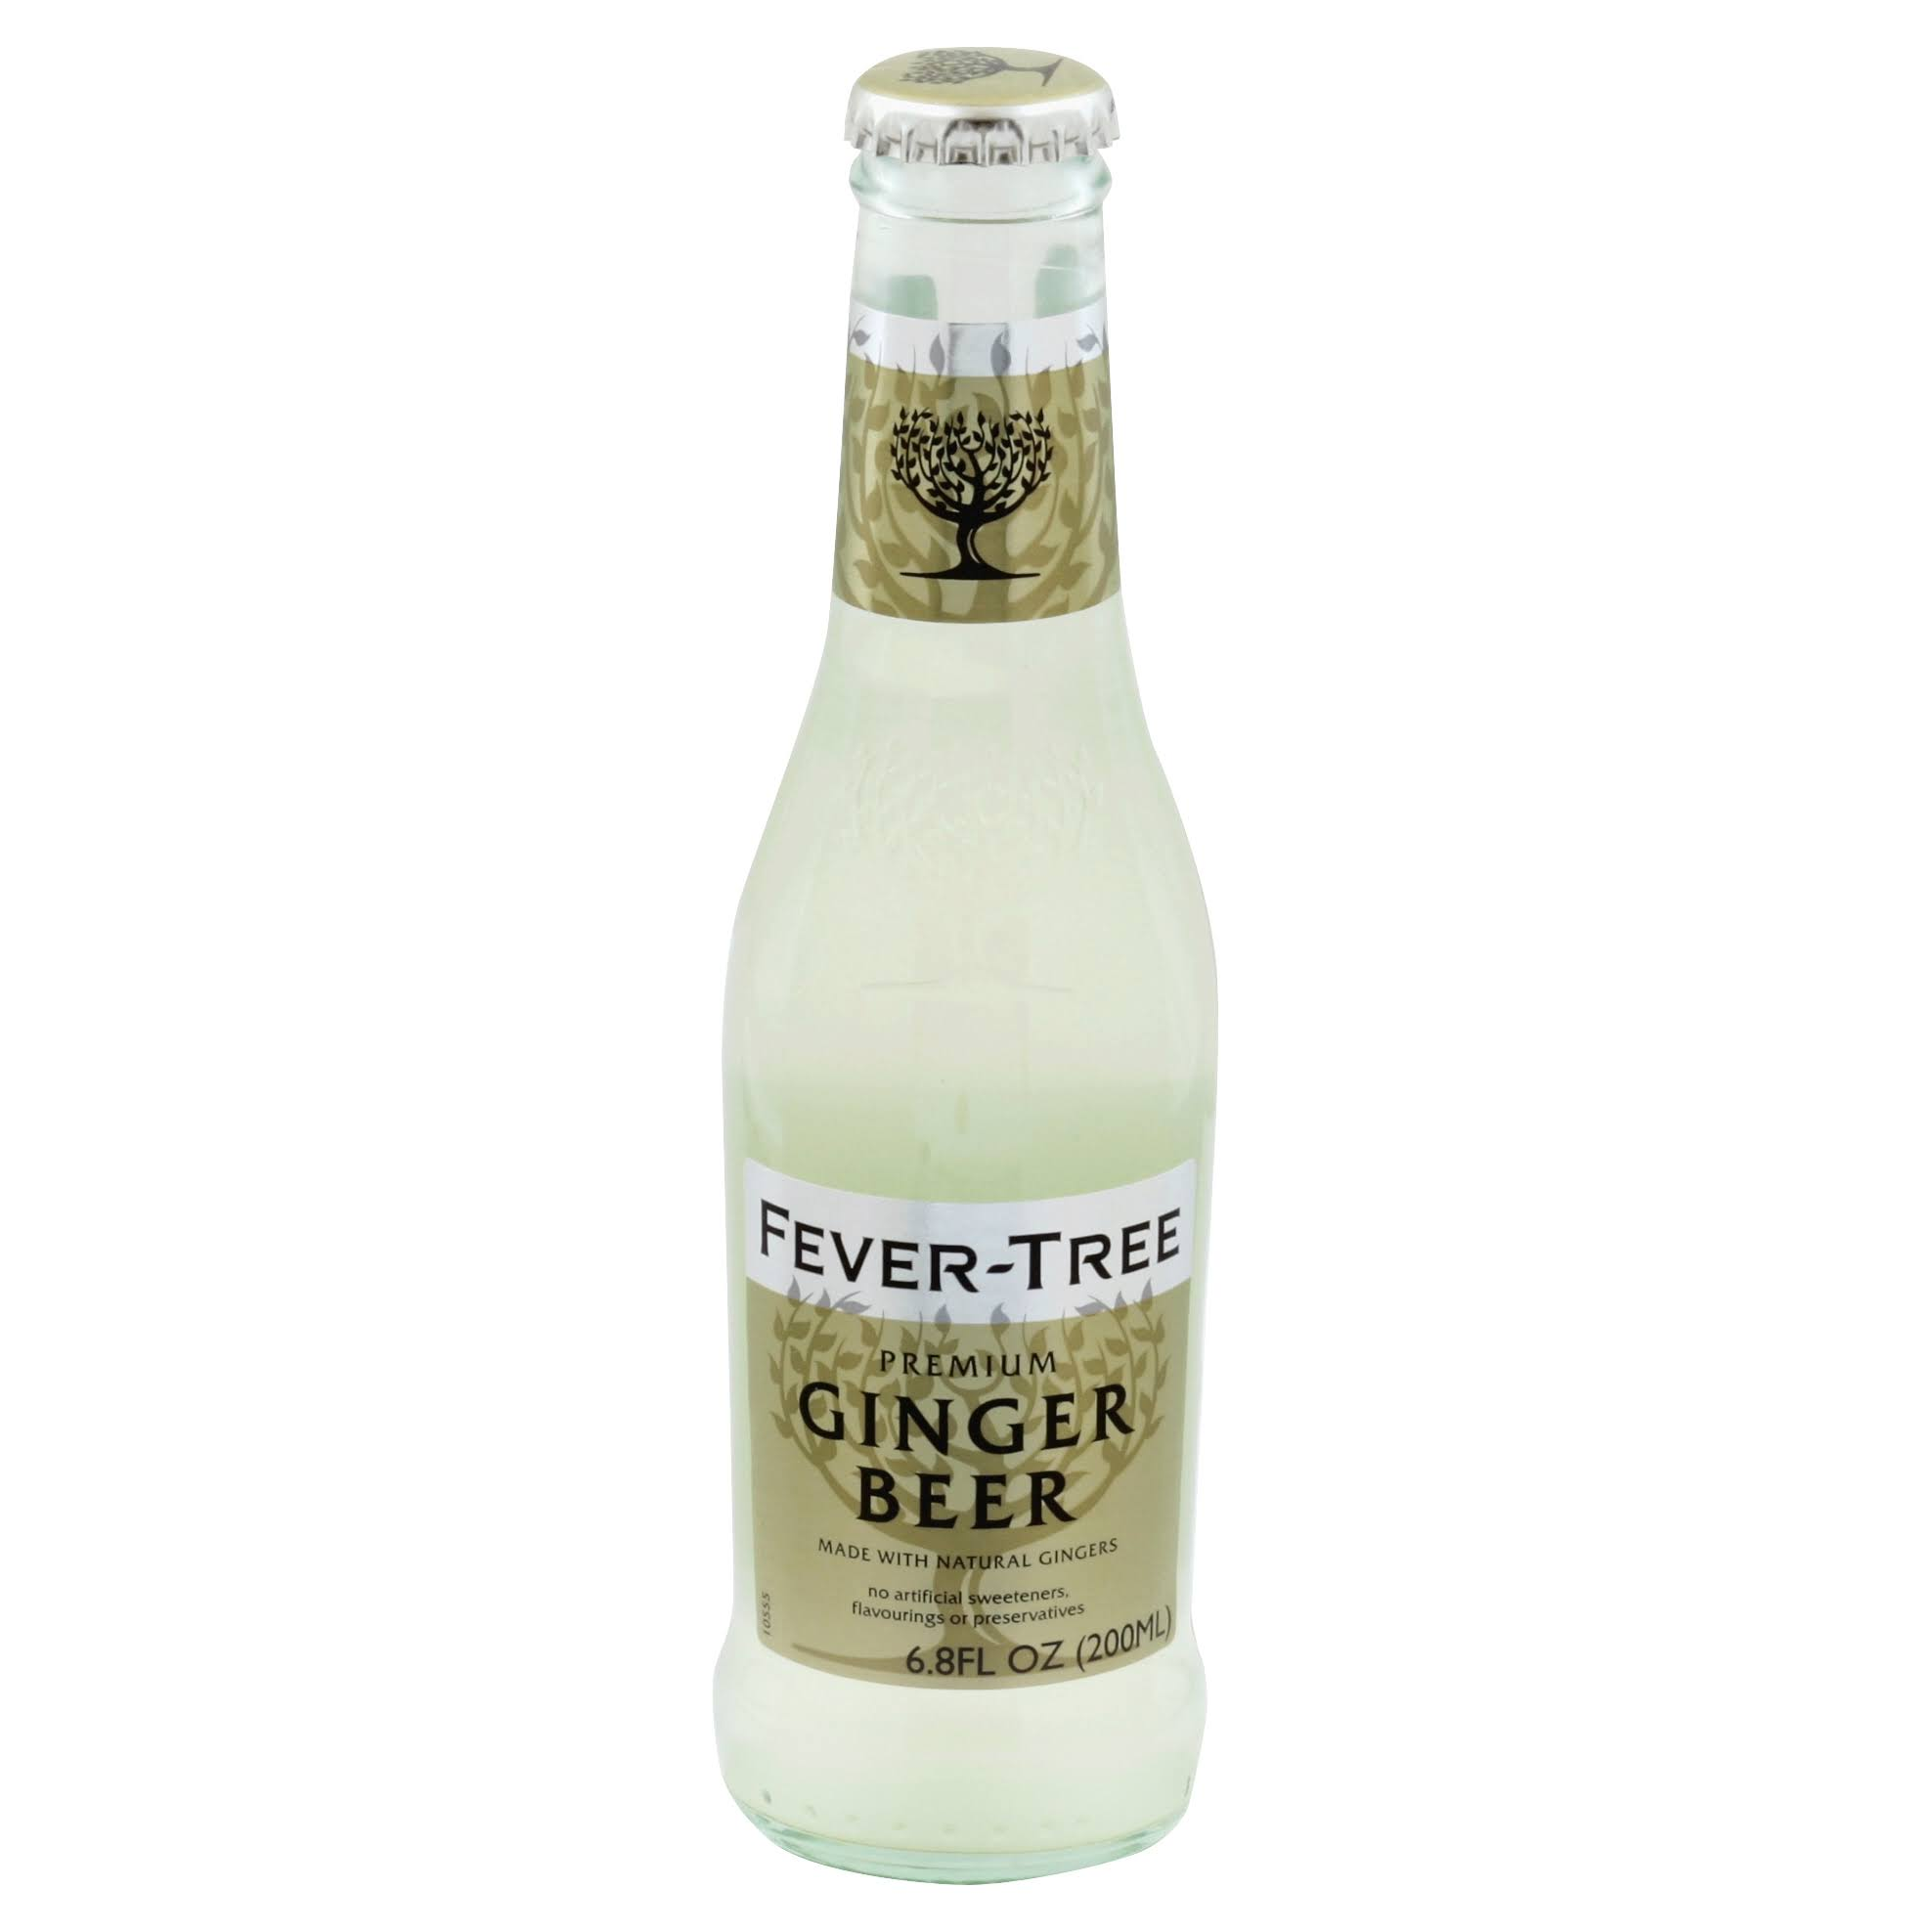 Fever-Tree Premium Ginger Beer - 200ml